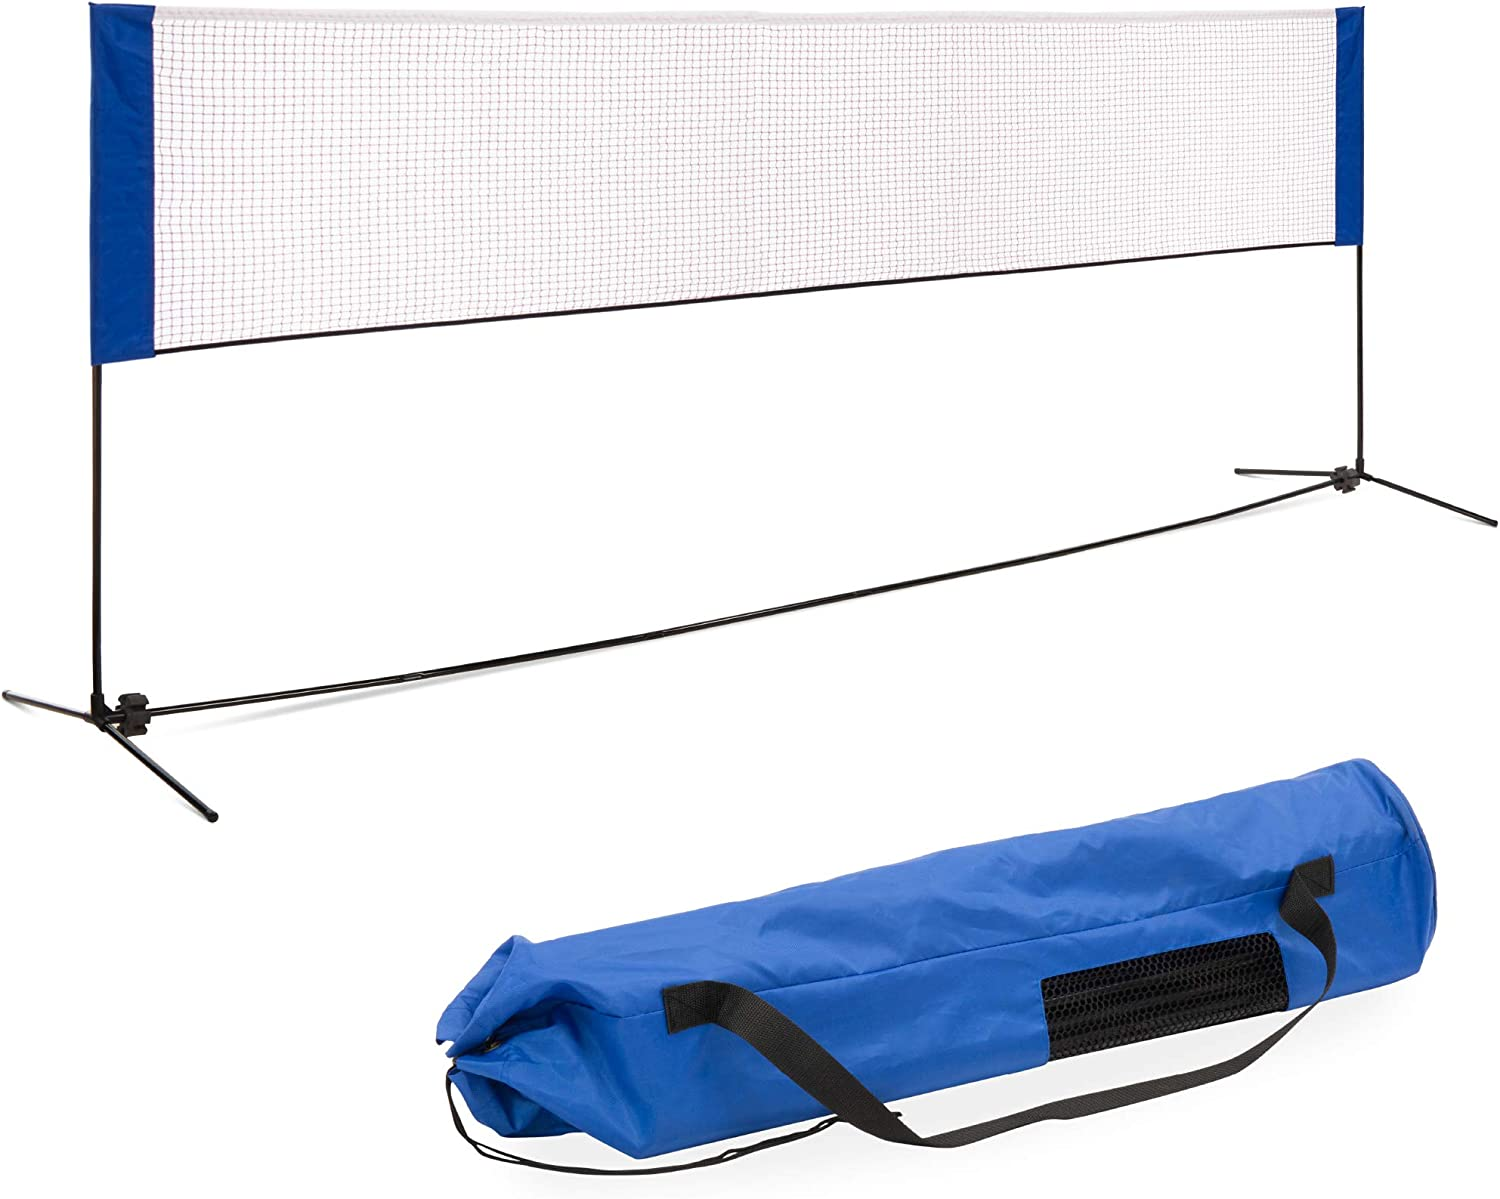 Adjustable Portable Foldable Badminton Tennis Volleyball Net Stand Carrying Bag